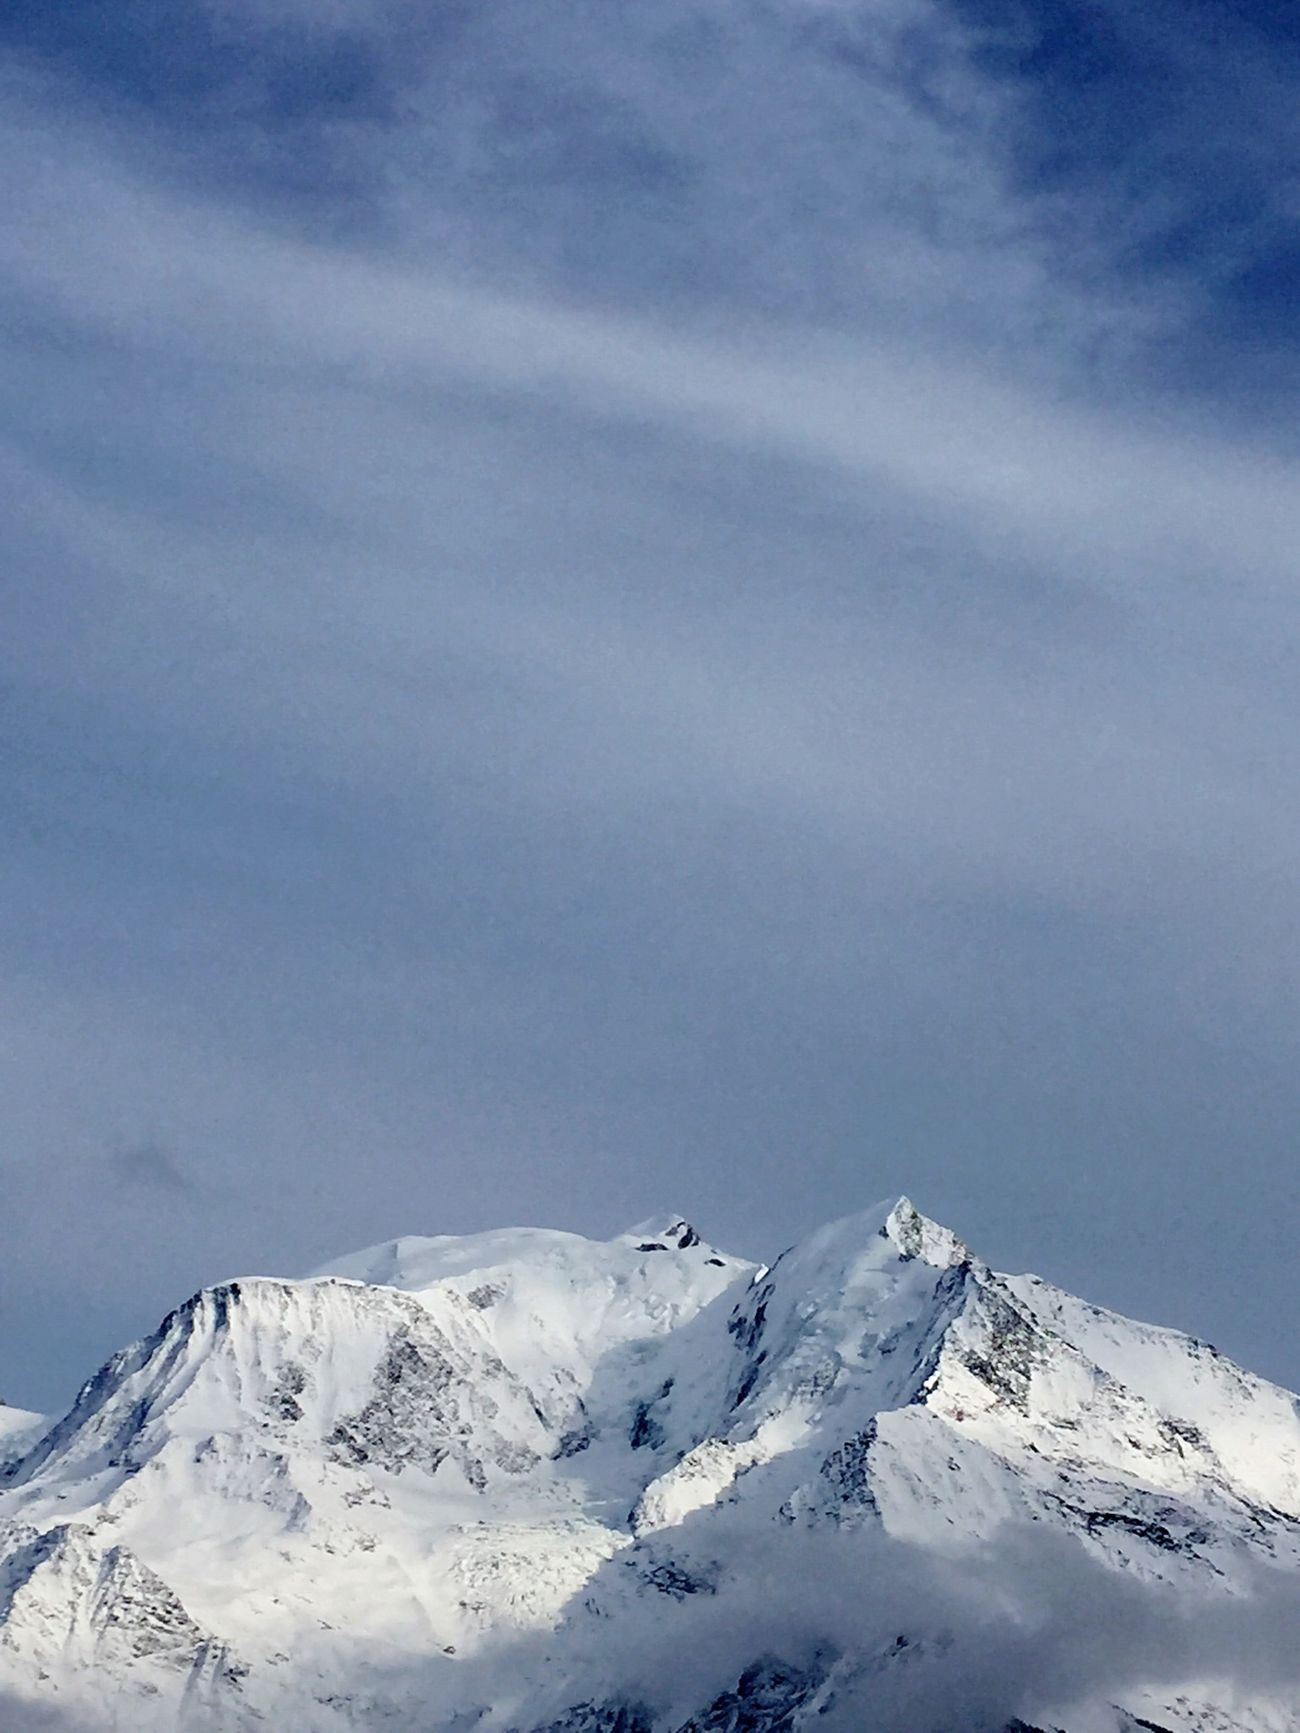 Mont Blanc ... 4810 m ... Beau Montblanc Skiing Mountains Mountain View Bettex Saint Gervais